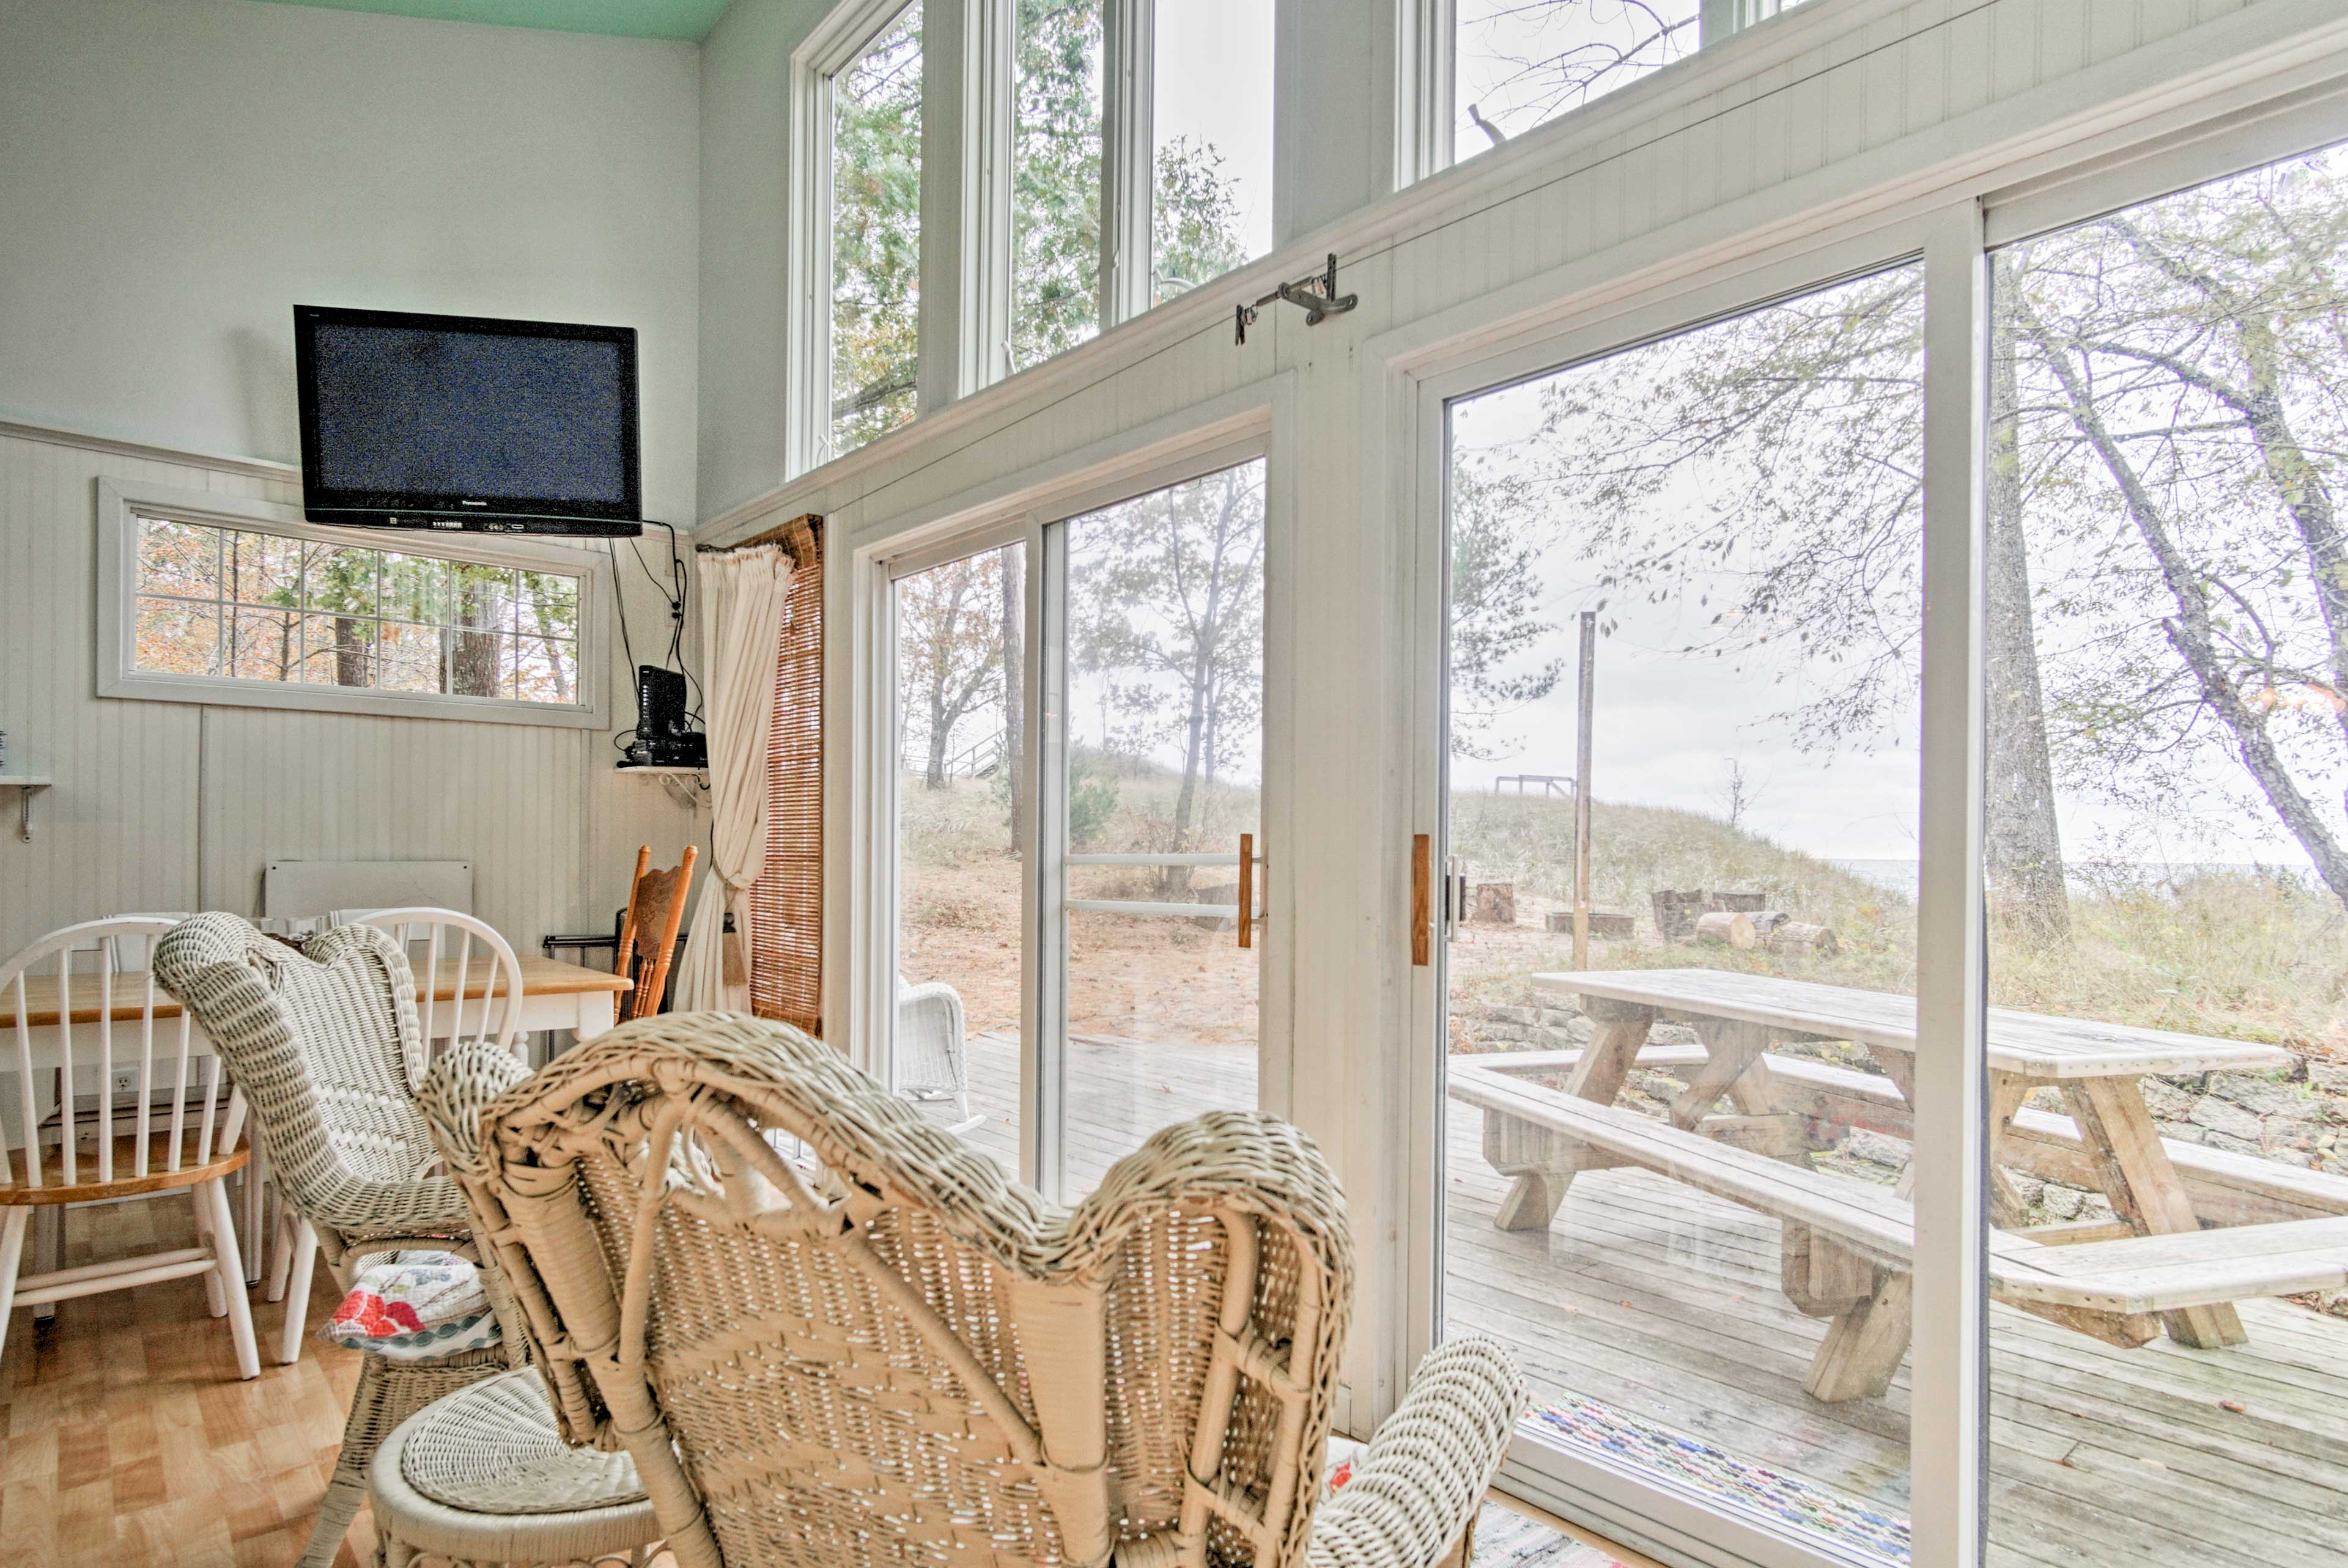 Large windows allow bright natural light to fill the cottage.